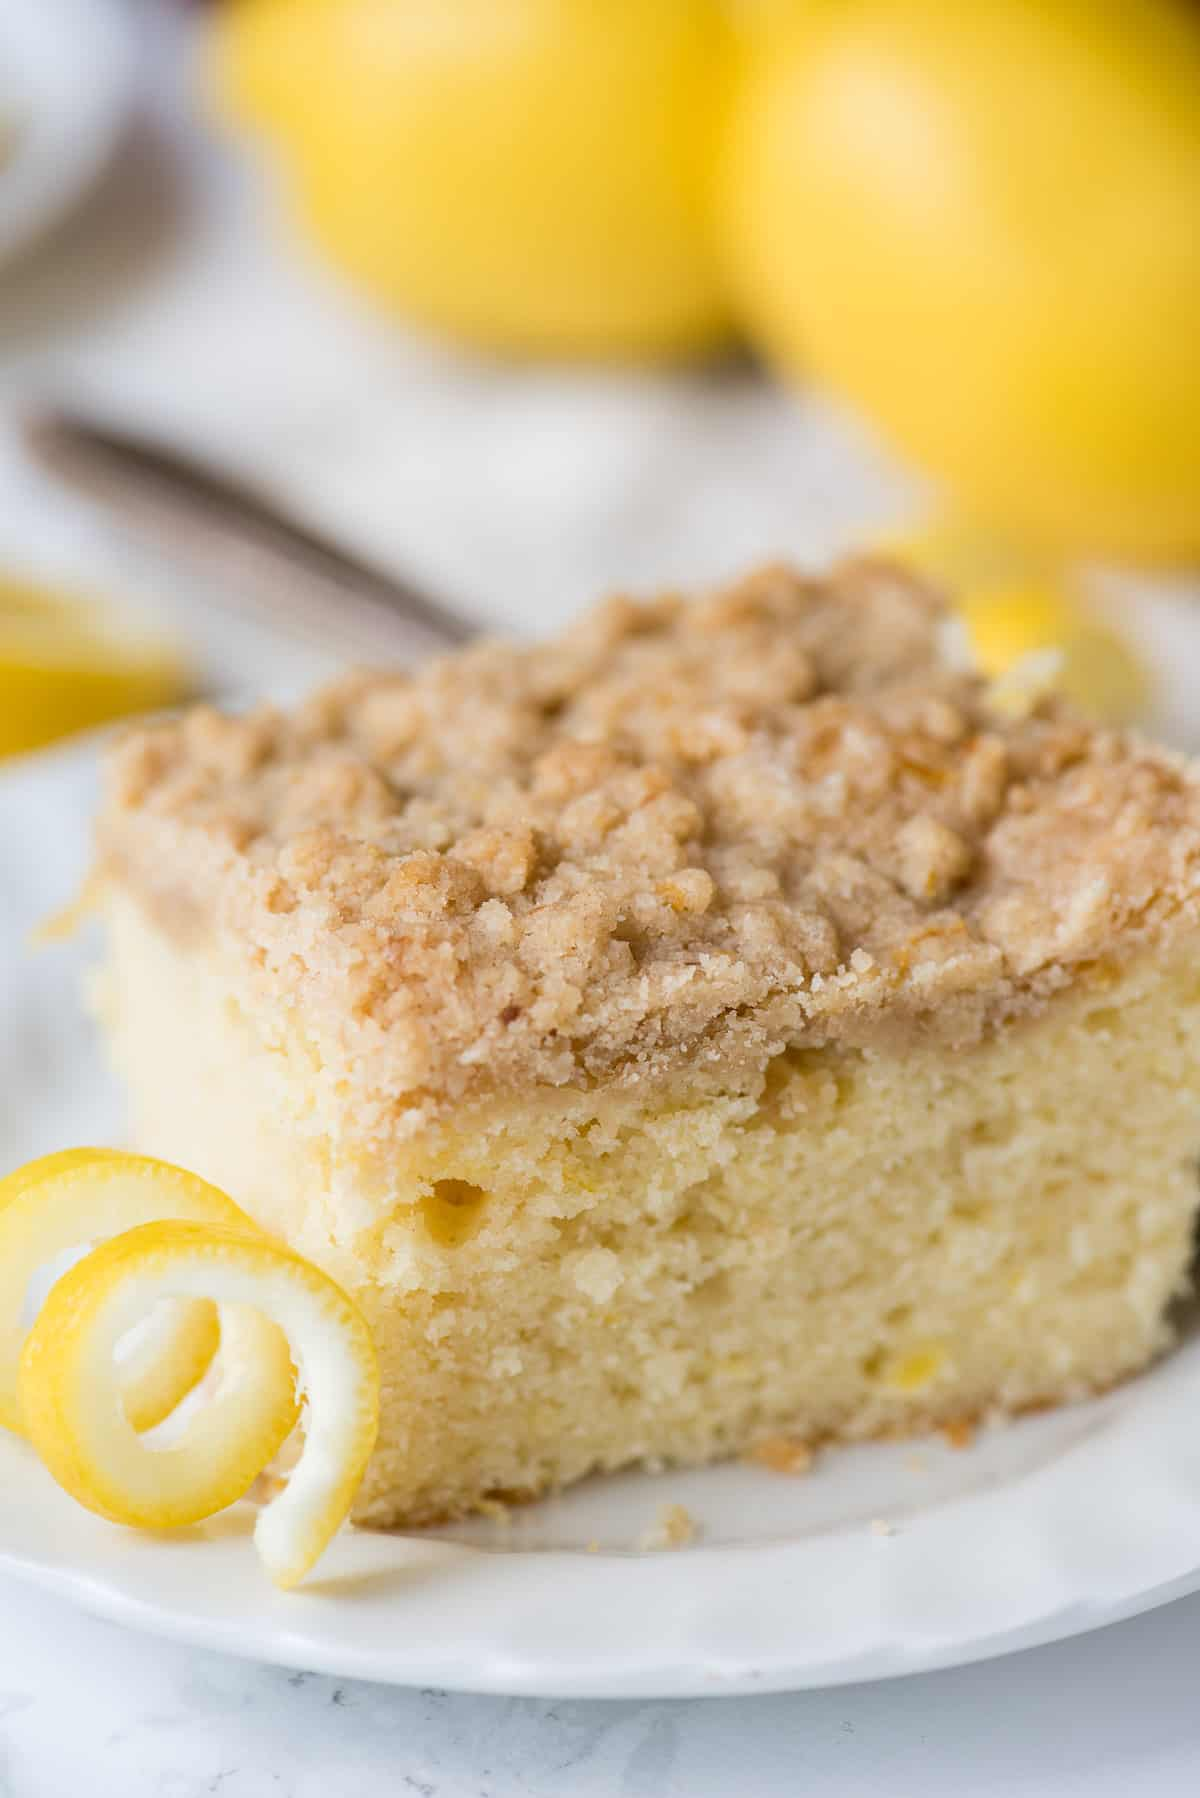 lemon crumb cake on white plate with lemons in the background